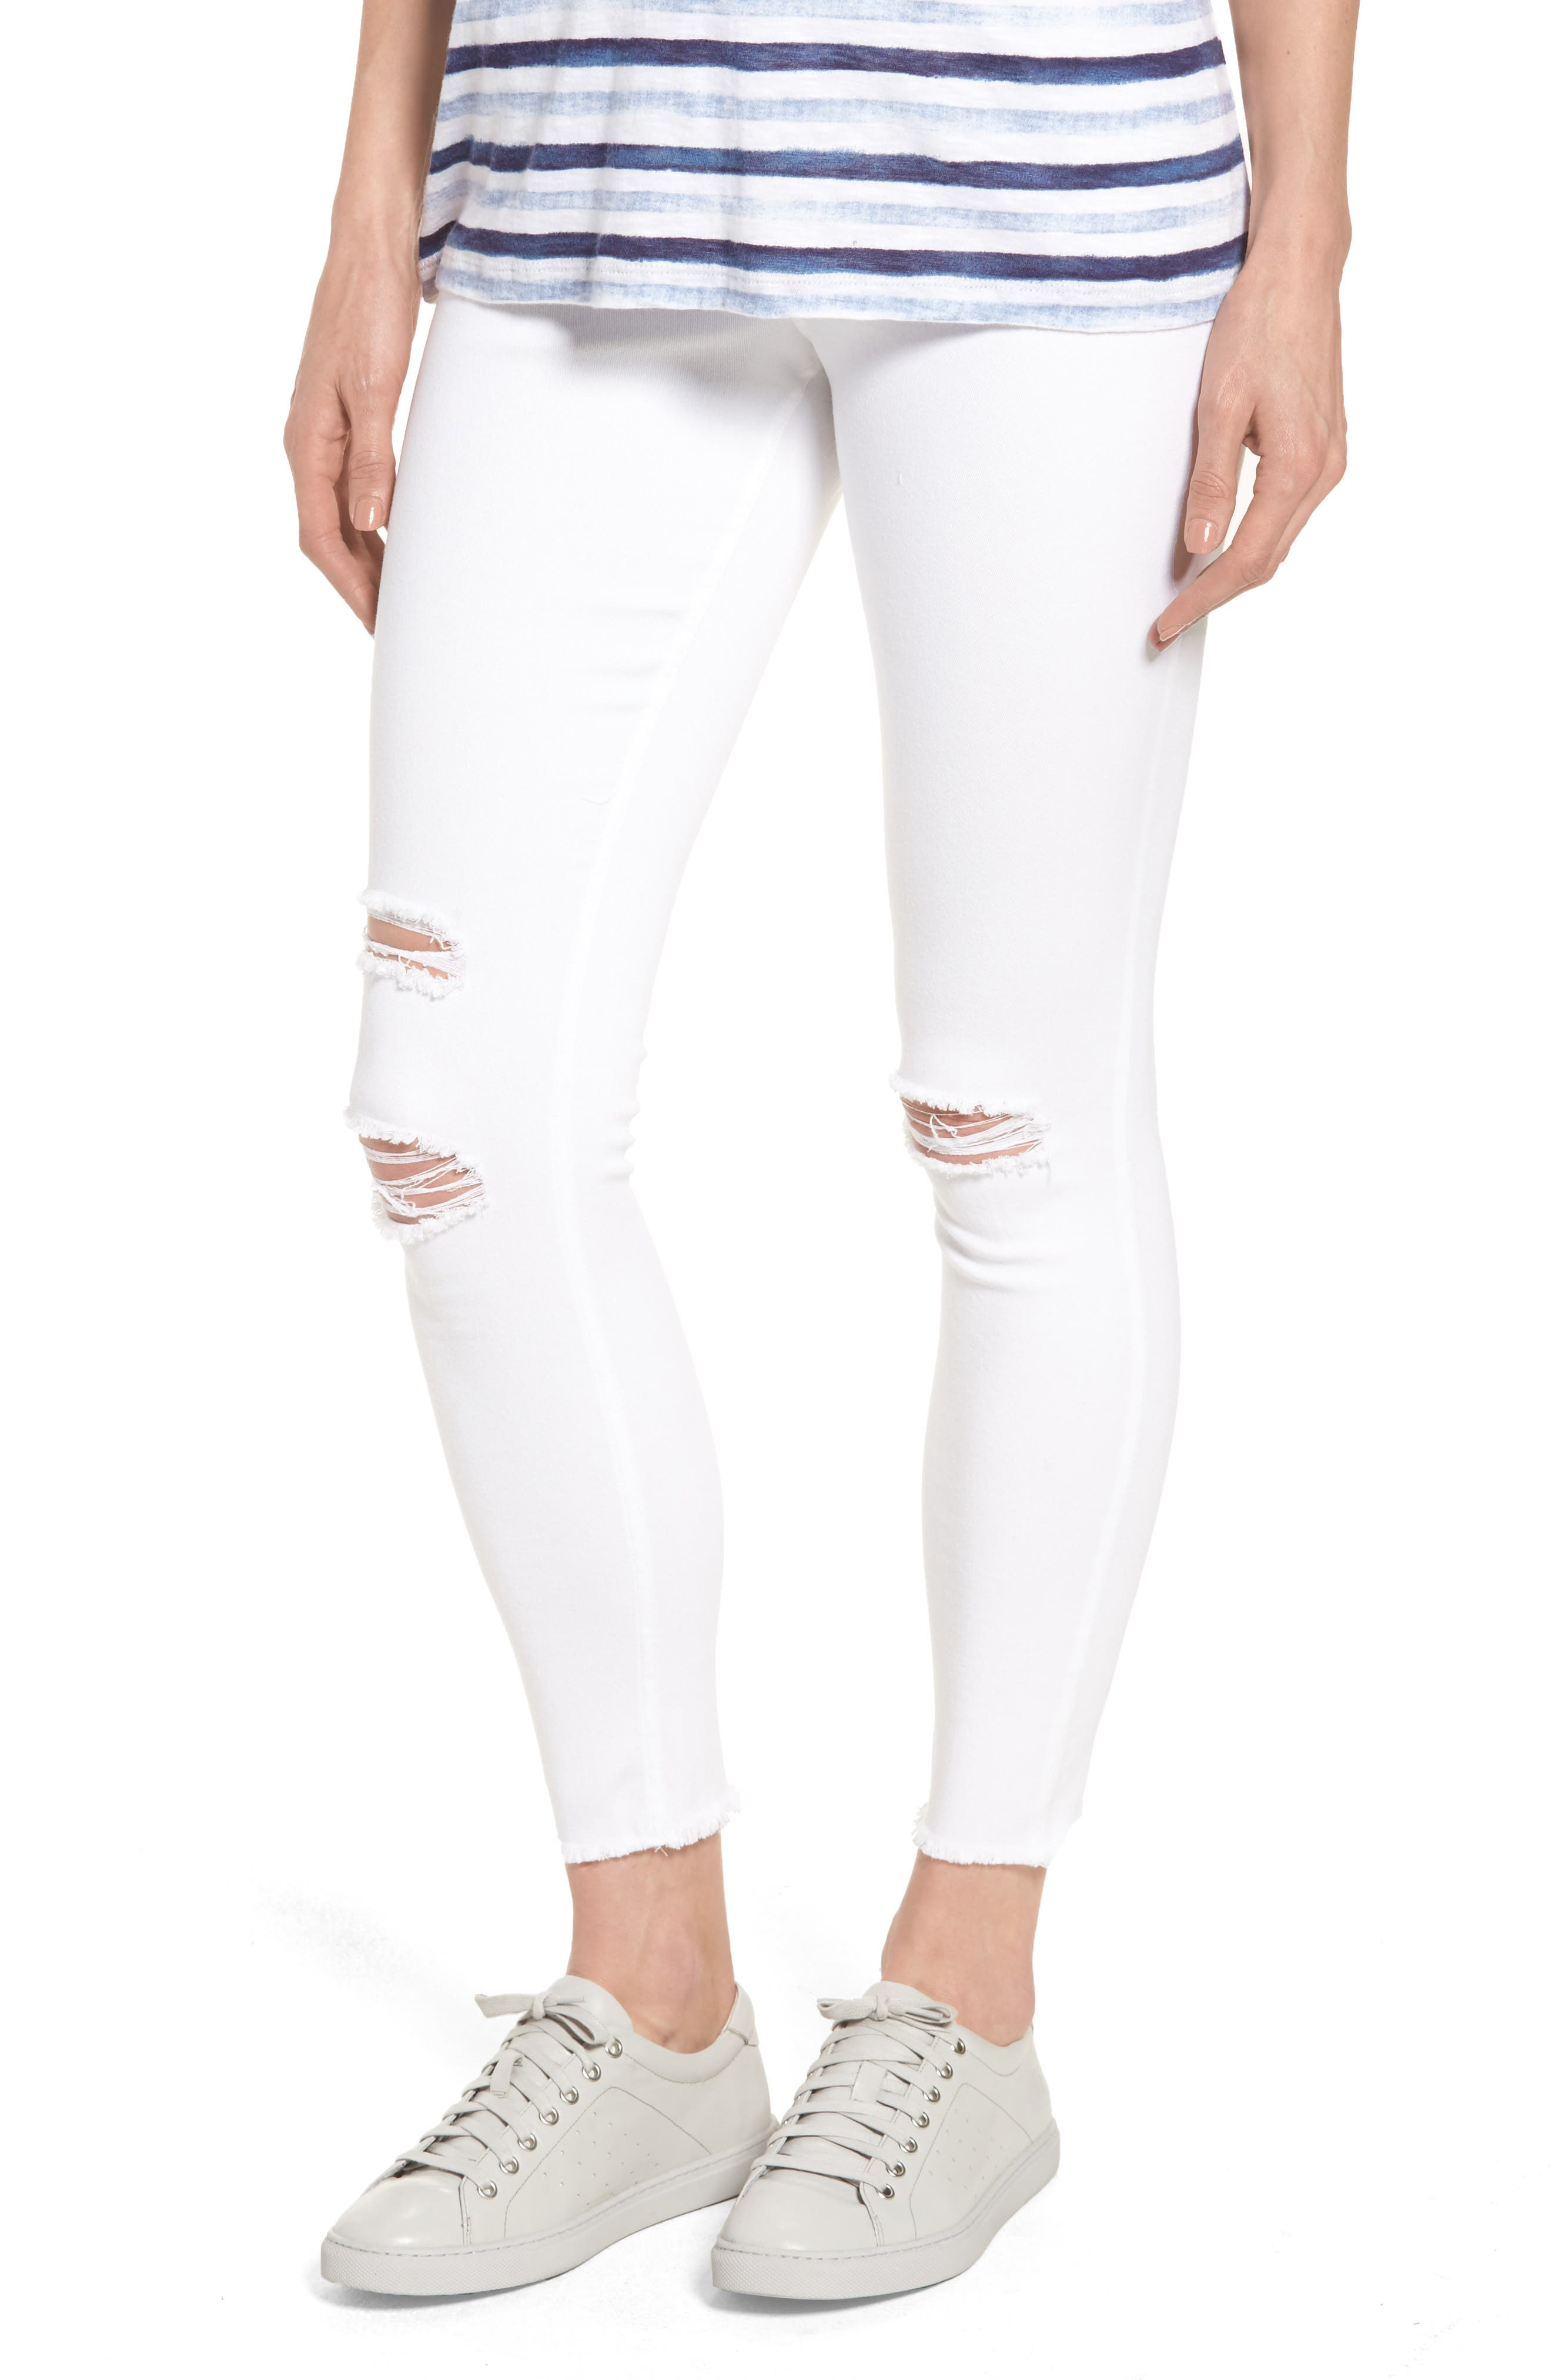 Hue Ripped Denim Skimmer Leggings